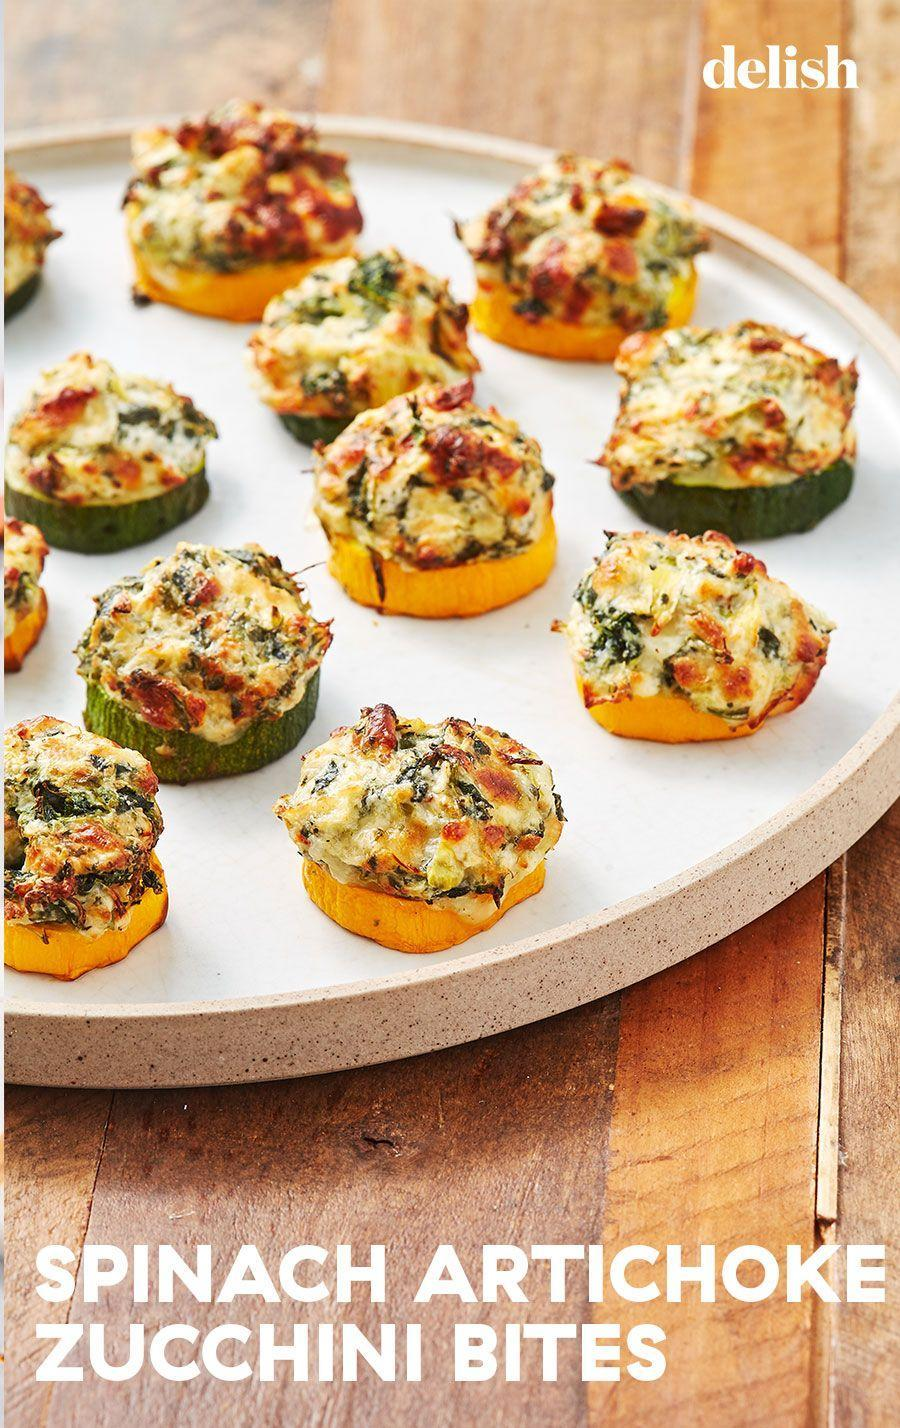 """<p>You can even make them in the air fryer!</p><p>Get the recipe from <a href=""""https://www.delish.com/cooking/recipe-ideas/a22876942/spinach-artichoke-zucchini-bites-recipe/"""" rel=""""nofollow noopener"""" target=""""_blank"""" data-ylk=""""slk:Delish"""" class=""""link rapid-noclick-resp"""">Delish</a>.</p>"""